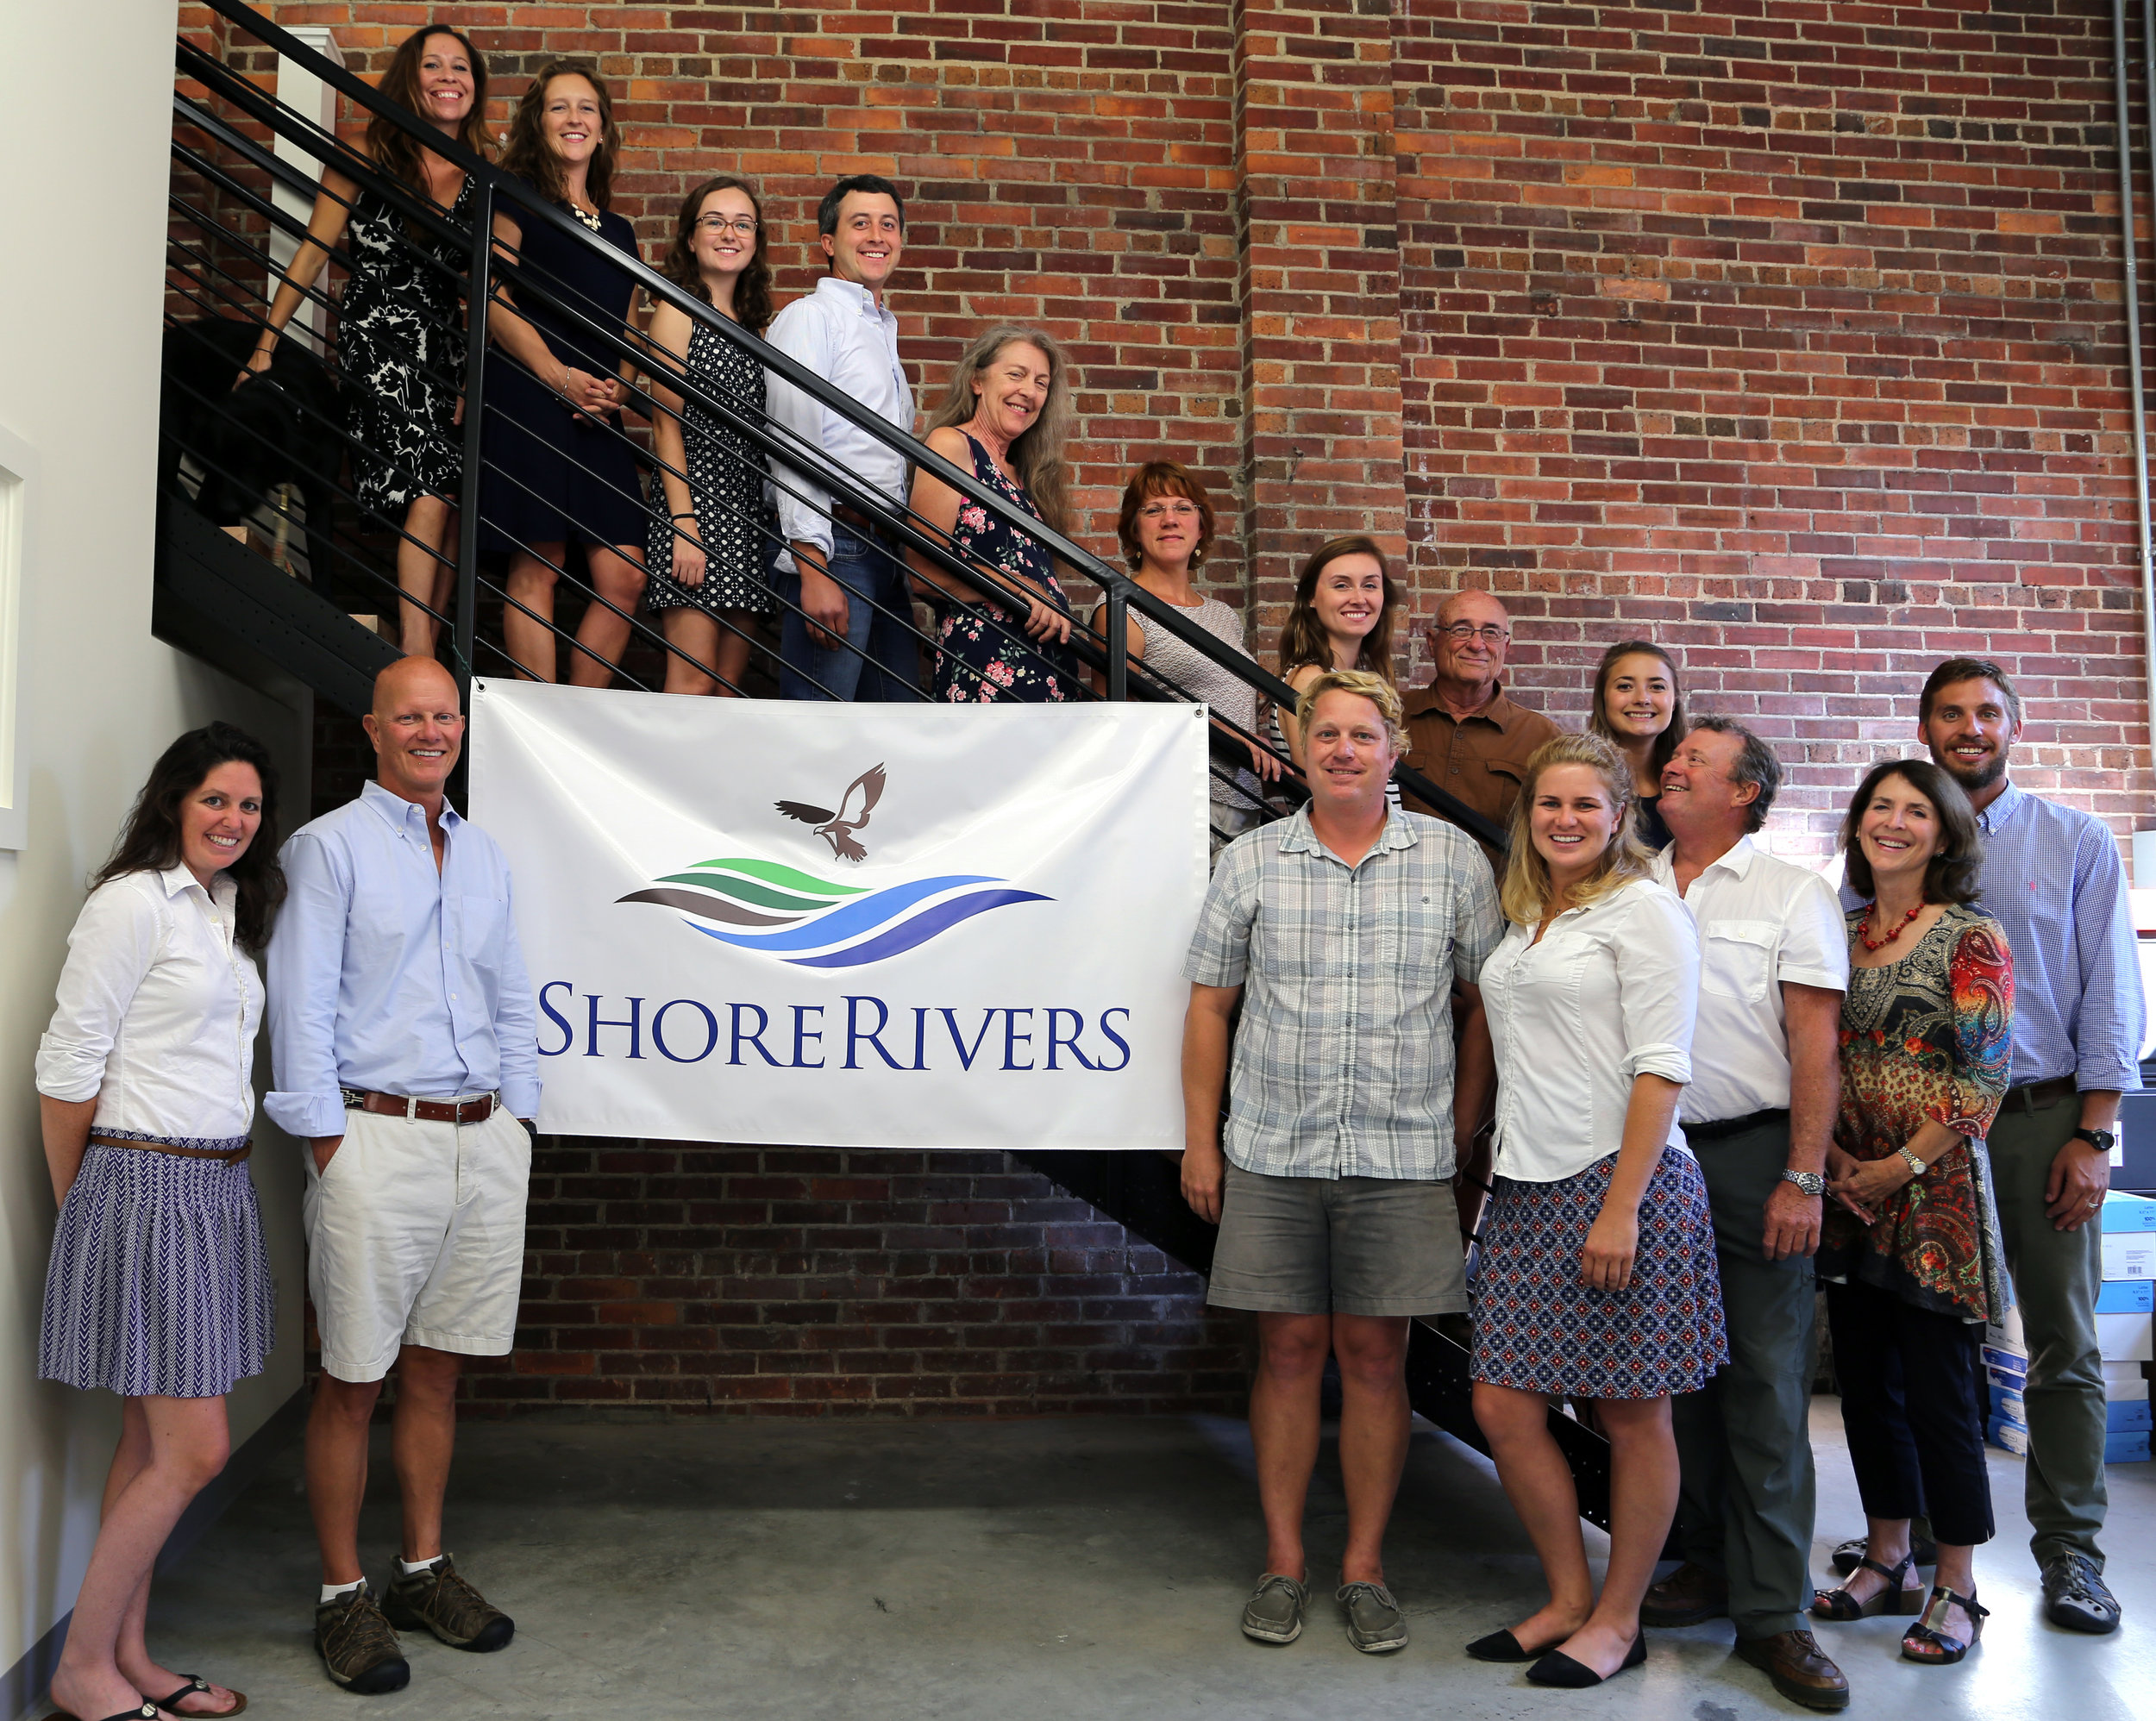 ShoreRivers staff celebrate their new Easton headquarters following the merger of three environmental organizations in January 2018. Pictured are (front row, left to right) Elle Bassett, Jeff Horstman, Tim Trumbauer, Suzanne Sullivan, Tim Junkin, Kristin Junkin, Matt Pluta; (back row, left to right) Kristan Droter, Isabel Hardesty, Laura Wood, Tim Rosen, Ann Frock, Kim Righi, Emily Harris, Emmett Duke, and Rebecca Murphy.